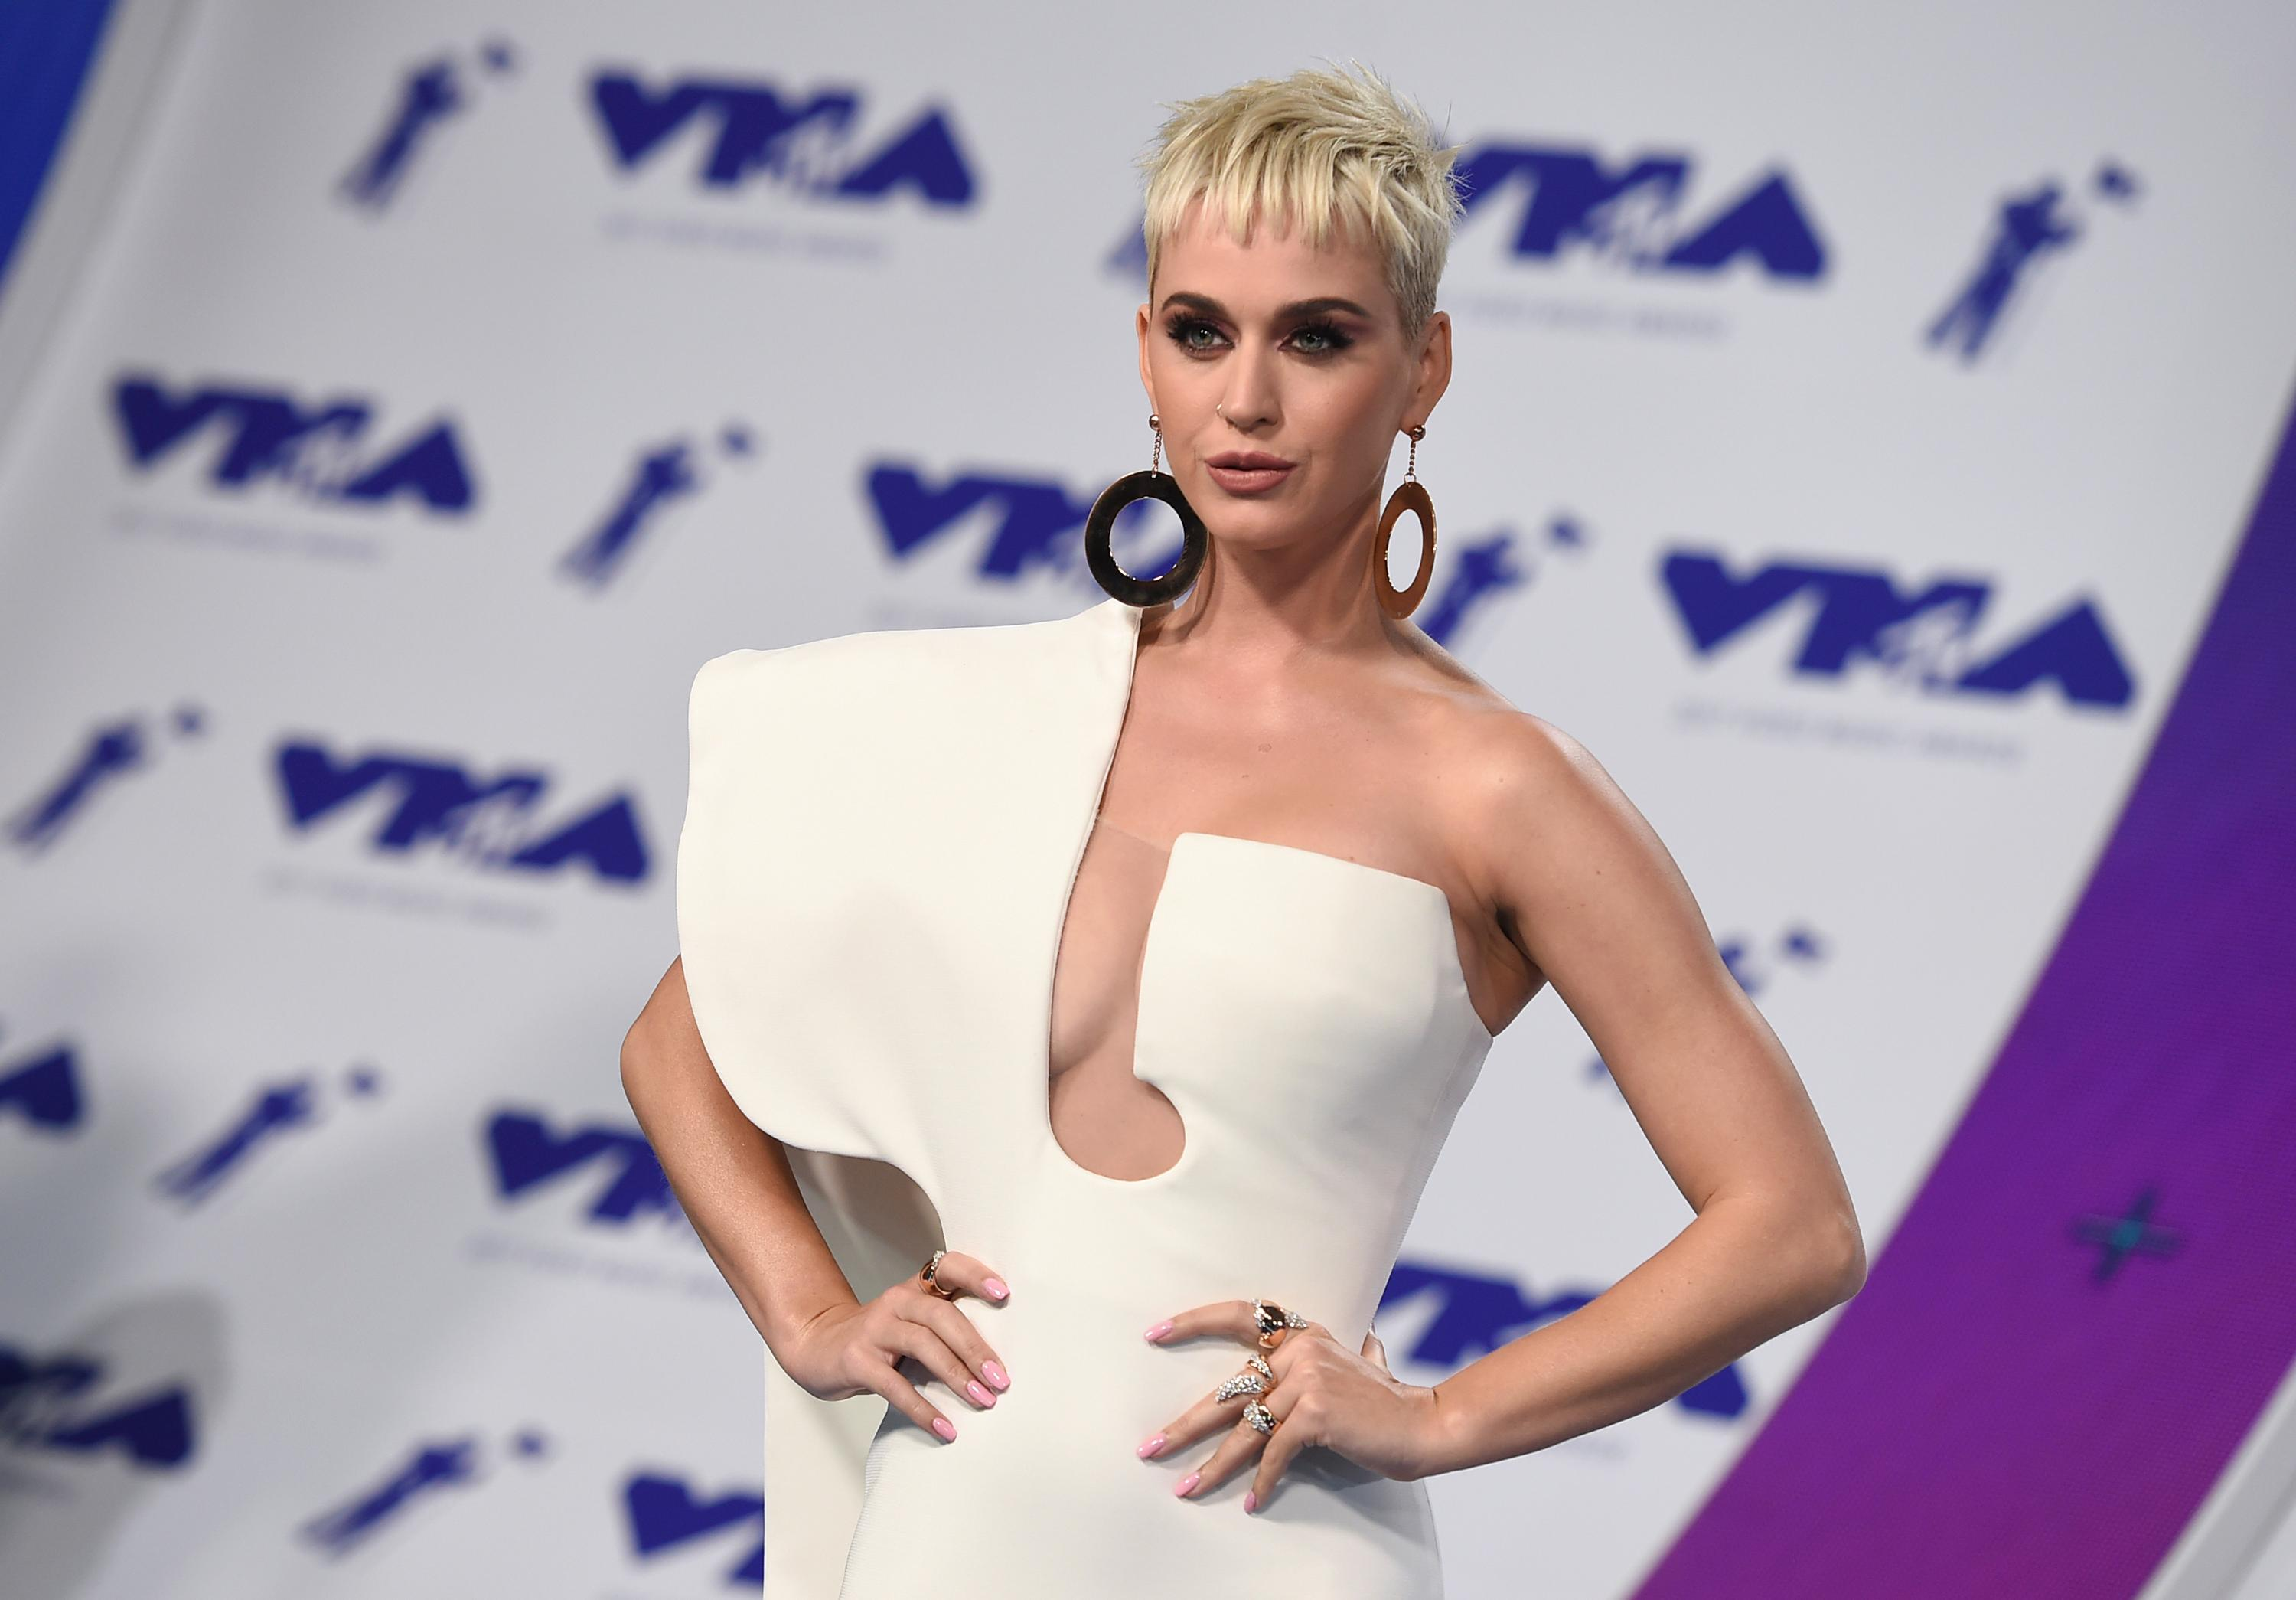 Katy Perry arrives at the MTV Video Music Awards at The Forum on Sunday, Aug. 27, 2017, in Inglewood, Calif. (Photo by Jordan Strauss/Invision/AP)